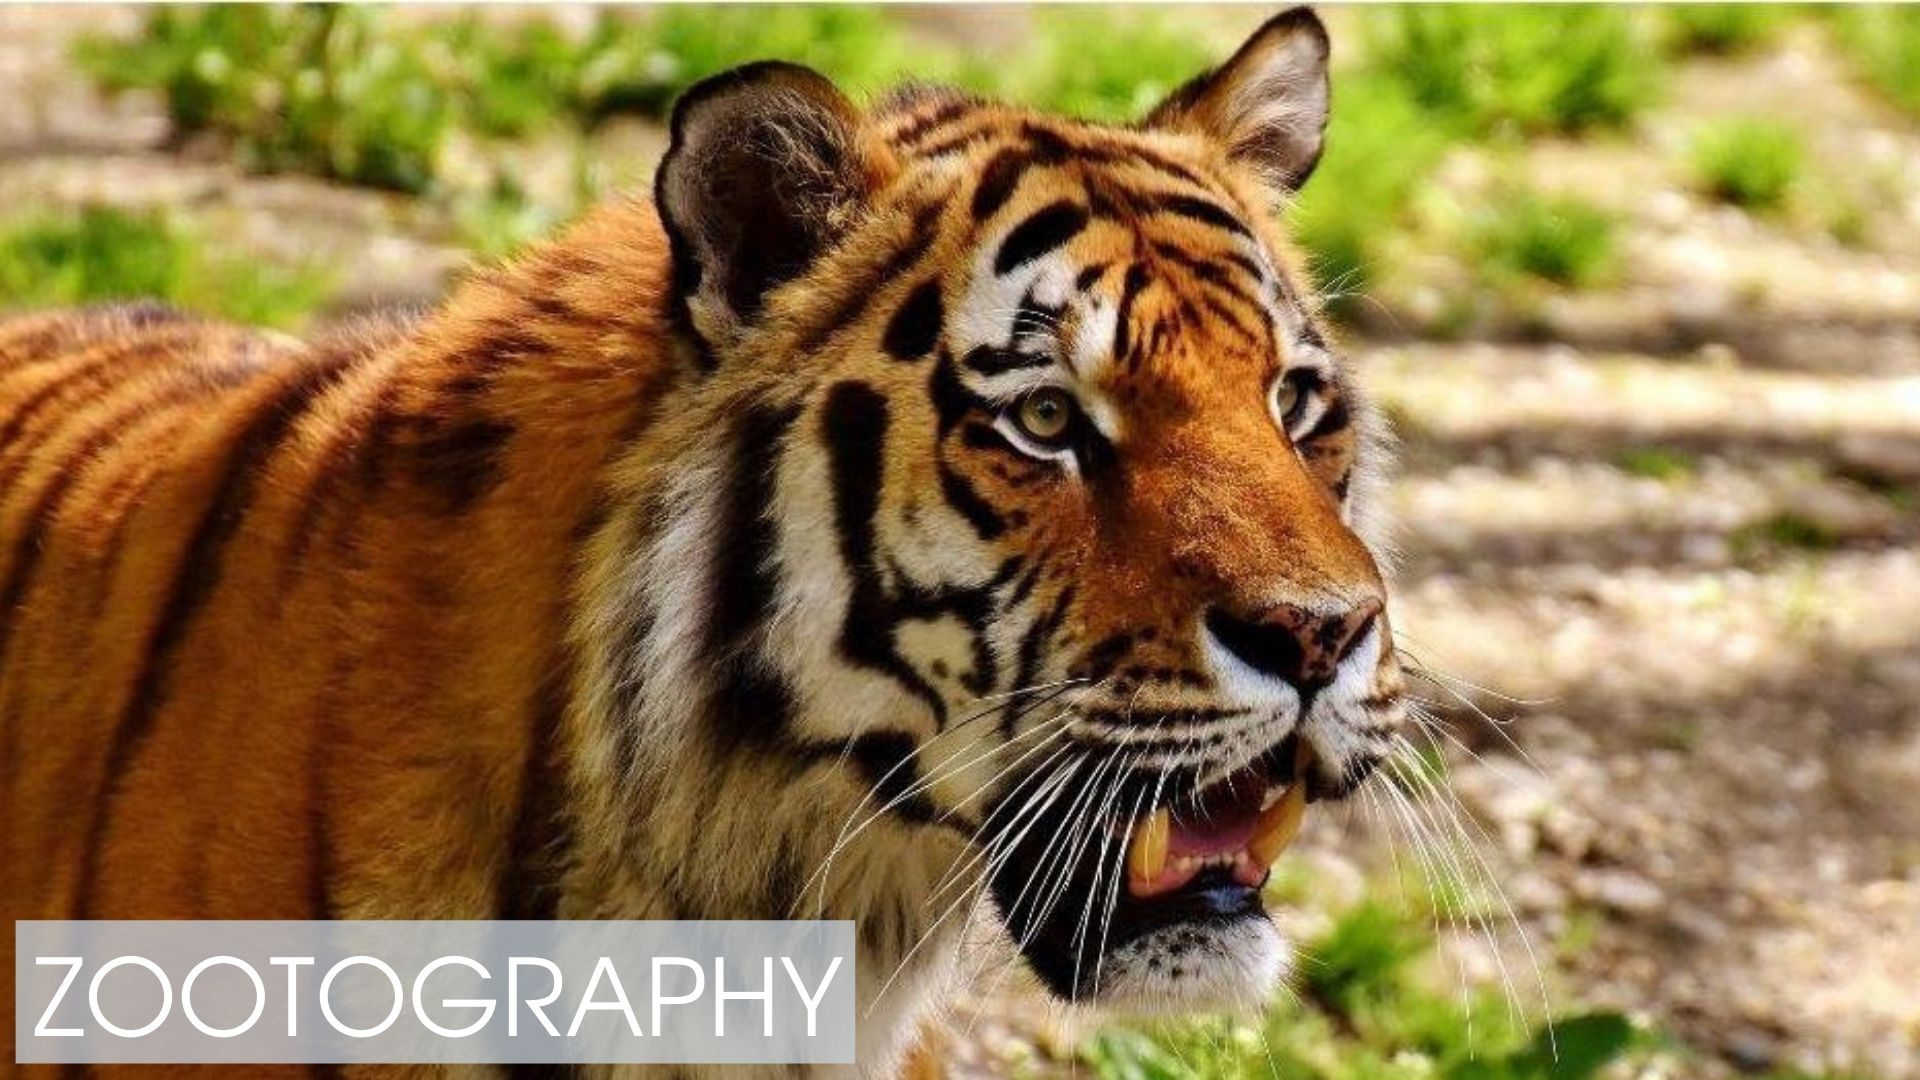 Zootography - Looking to add some ferocity to your zoo images? - Free Online Class